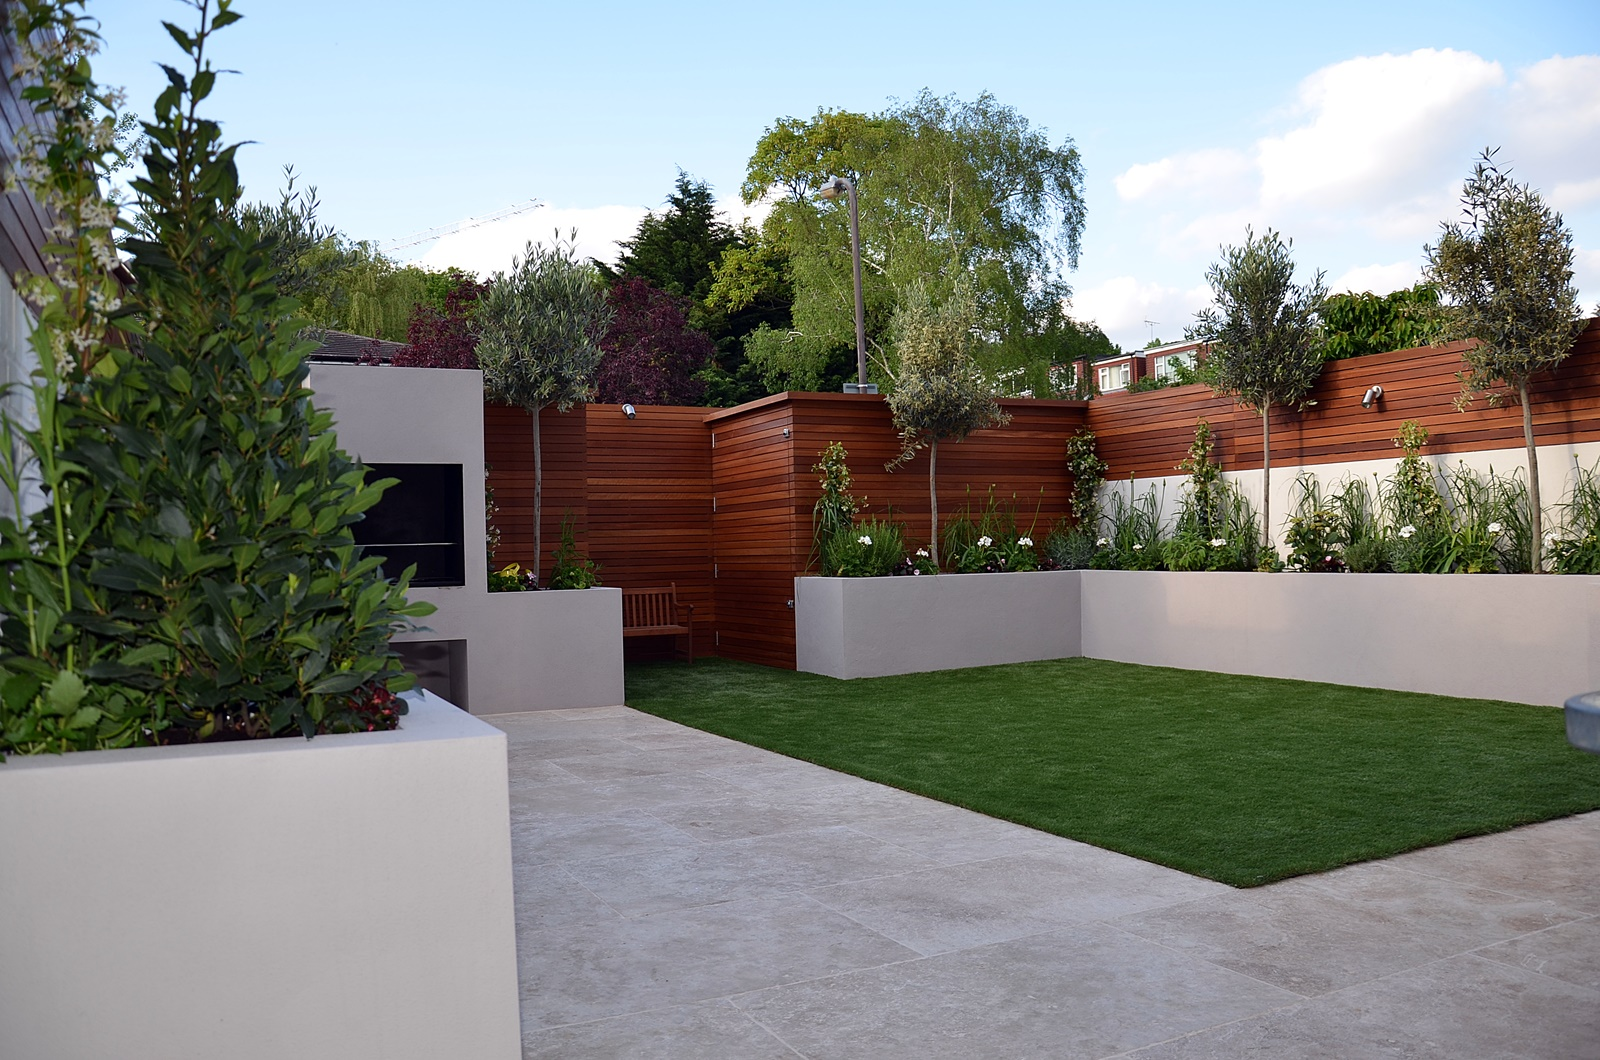 Modern garden design fulham chelsea clapham battersea for Small low maintenance garden designs